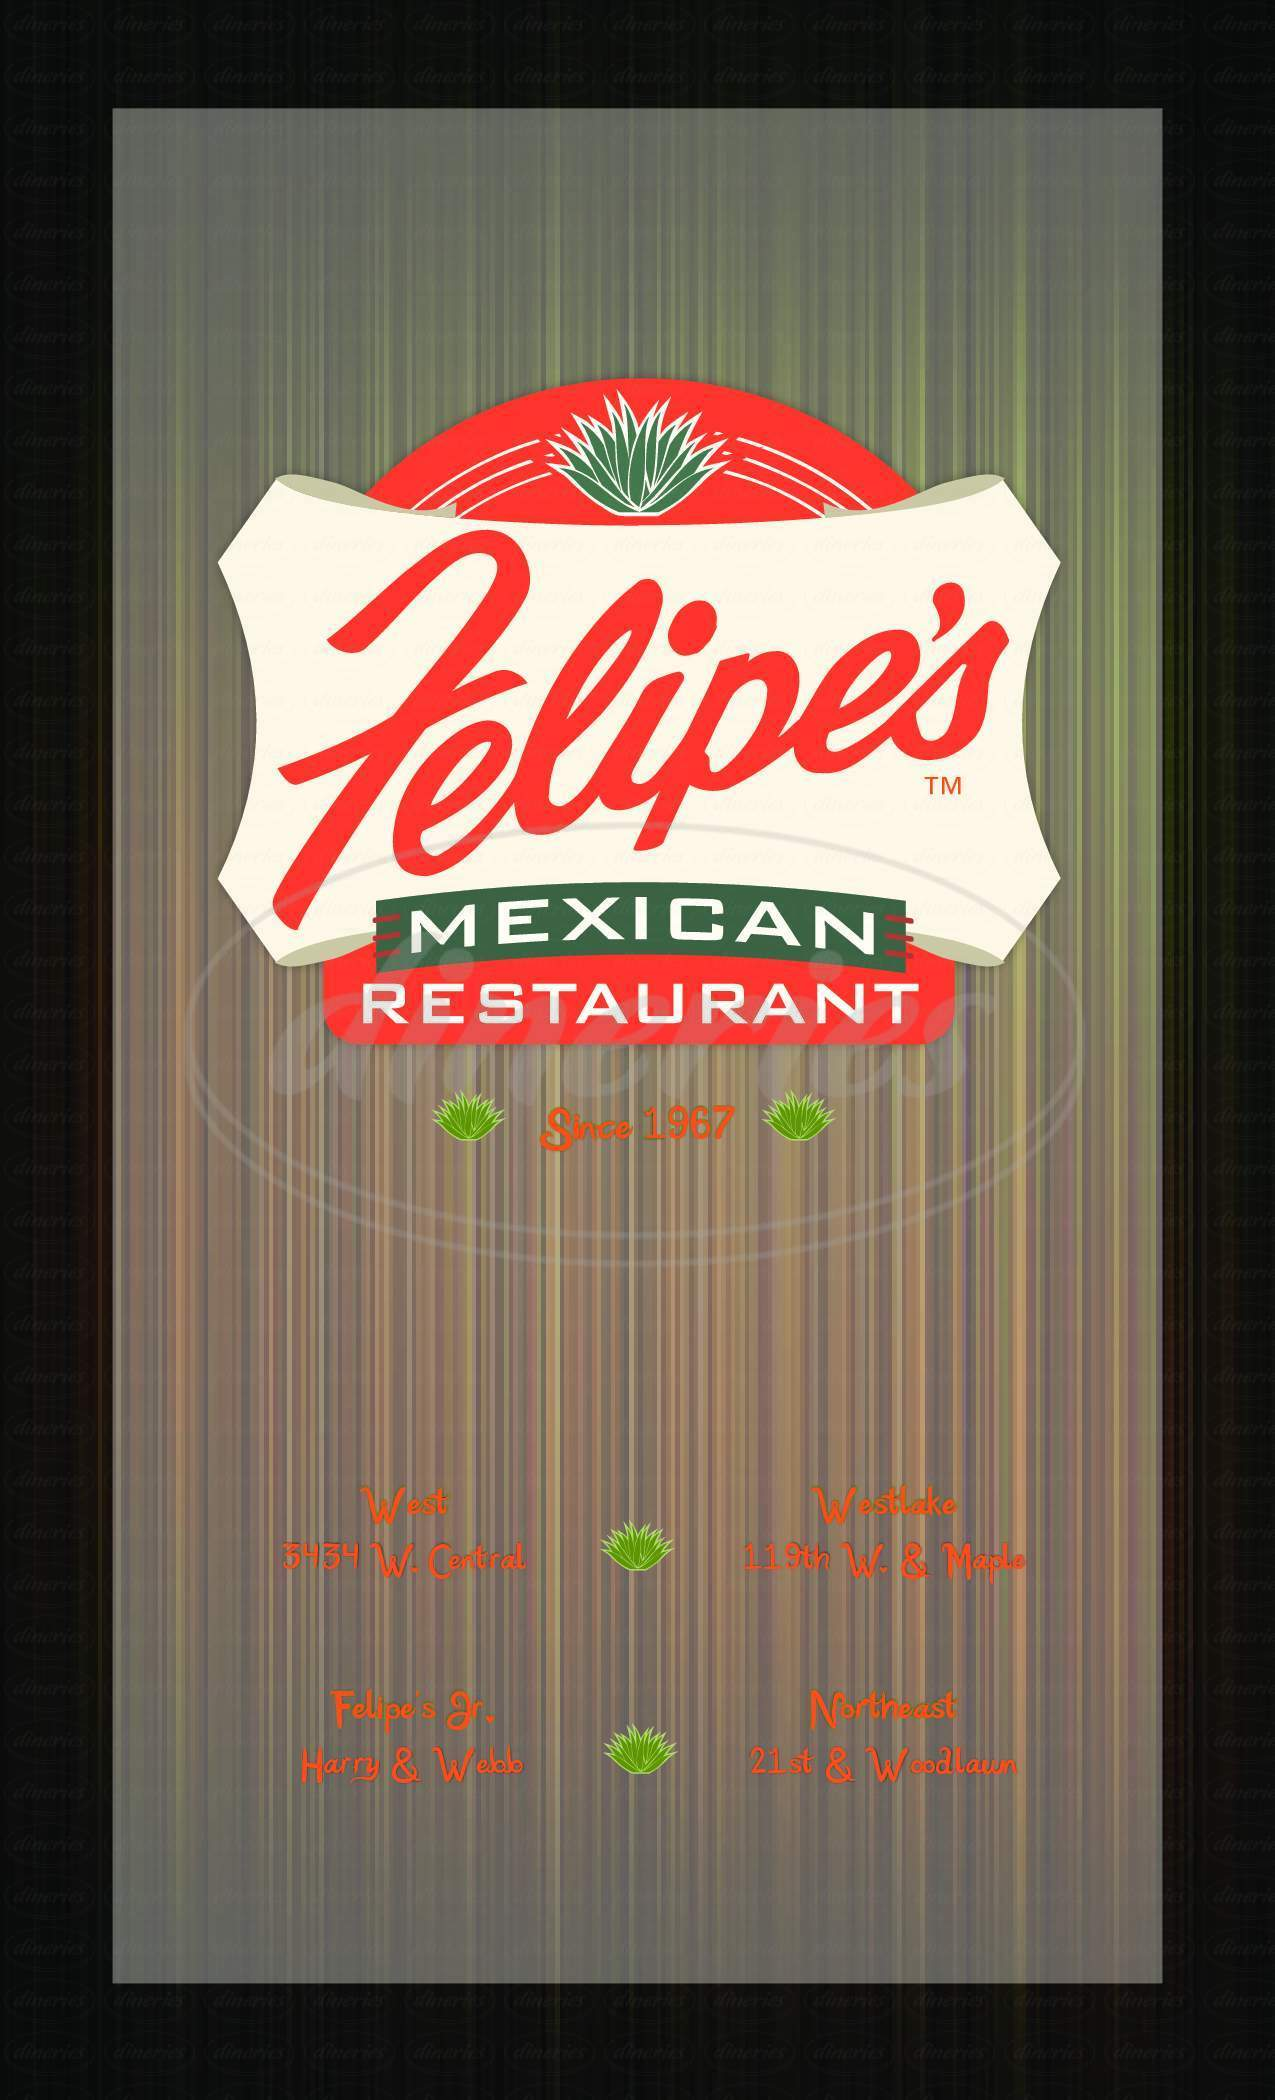 menu for Felipe's Mexican Restaurant